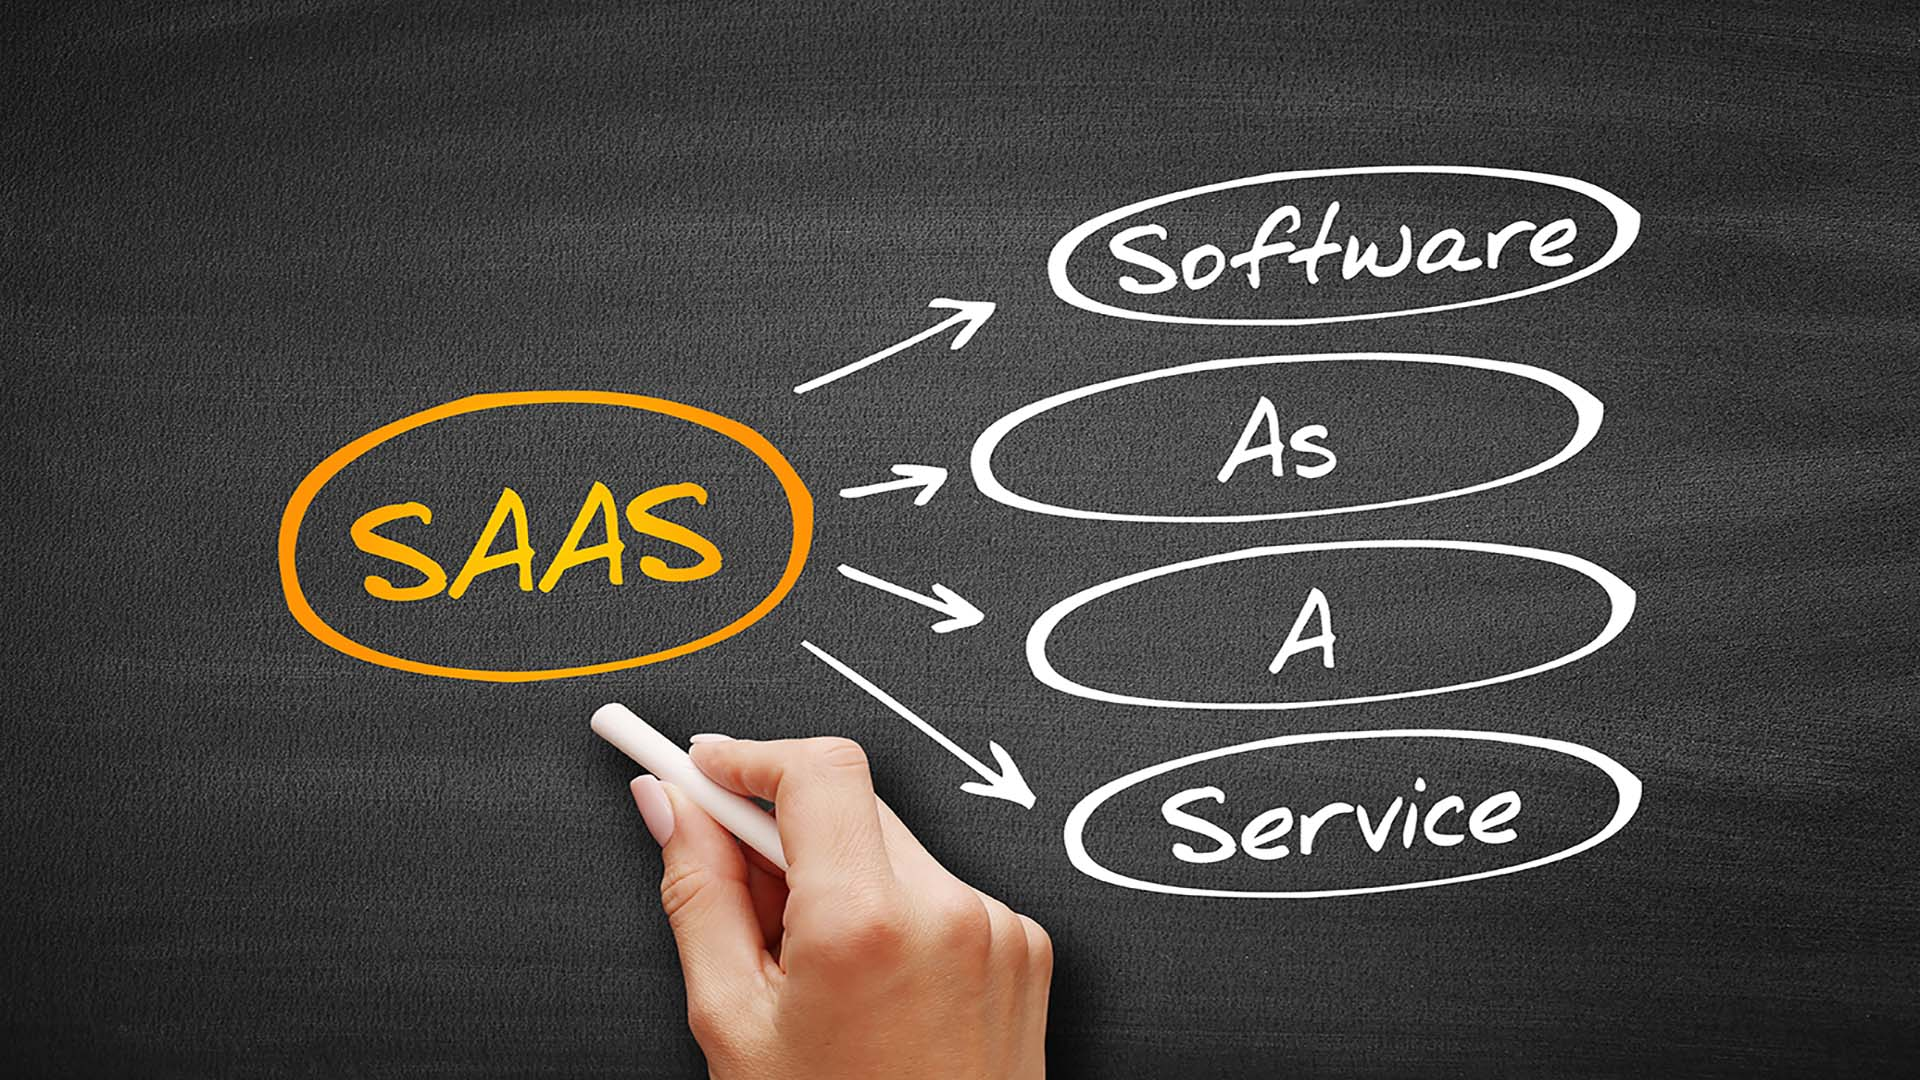 blog-ActoCalculatie-Saas-Software-as-a-service.